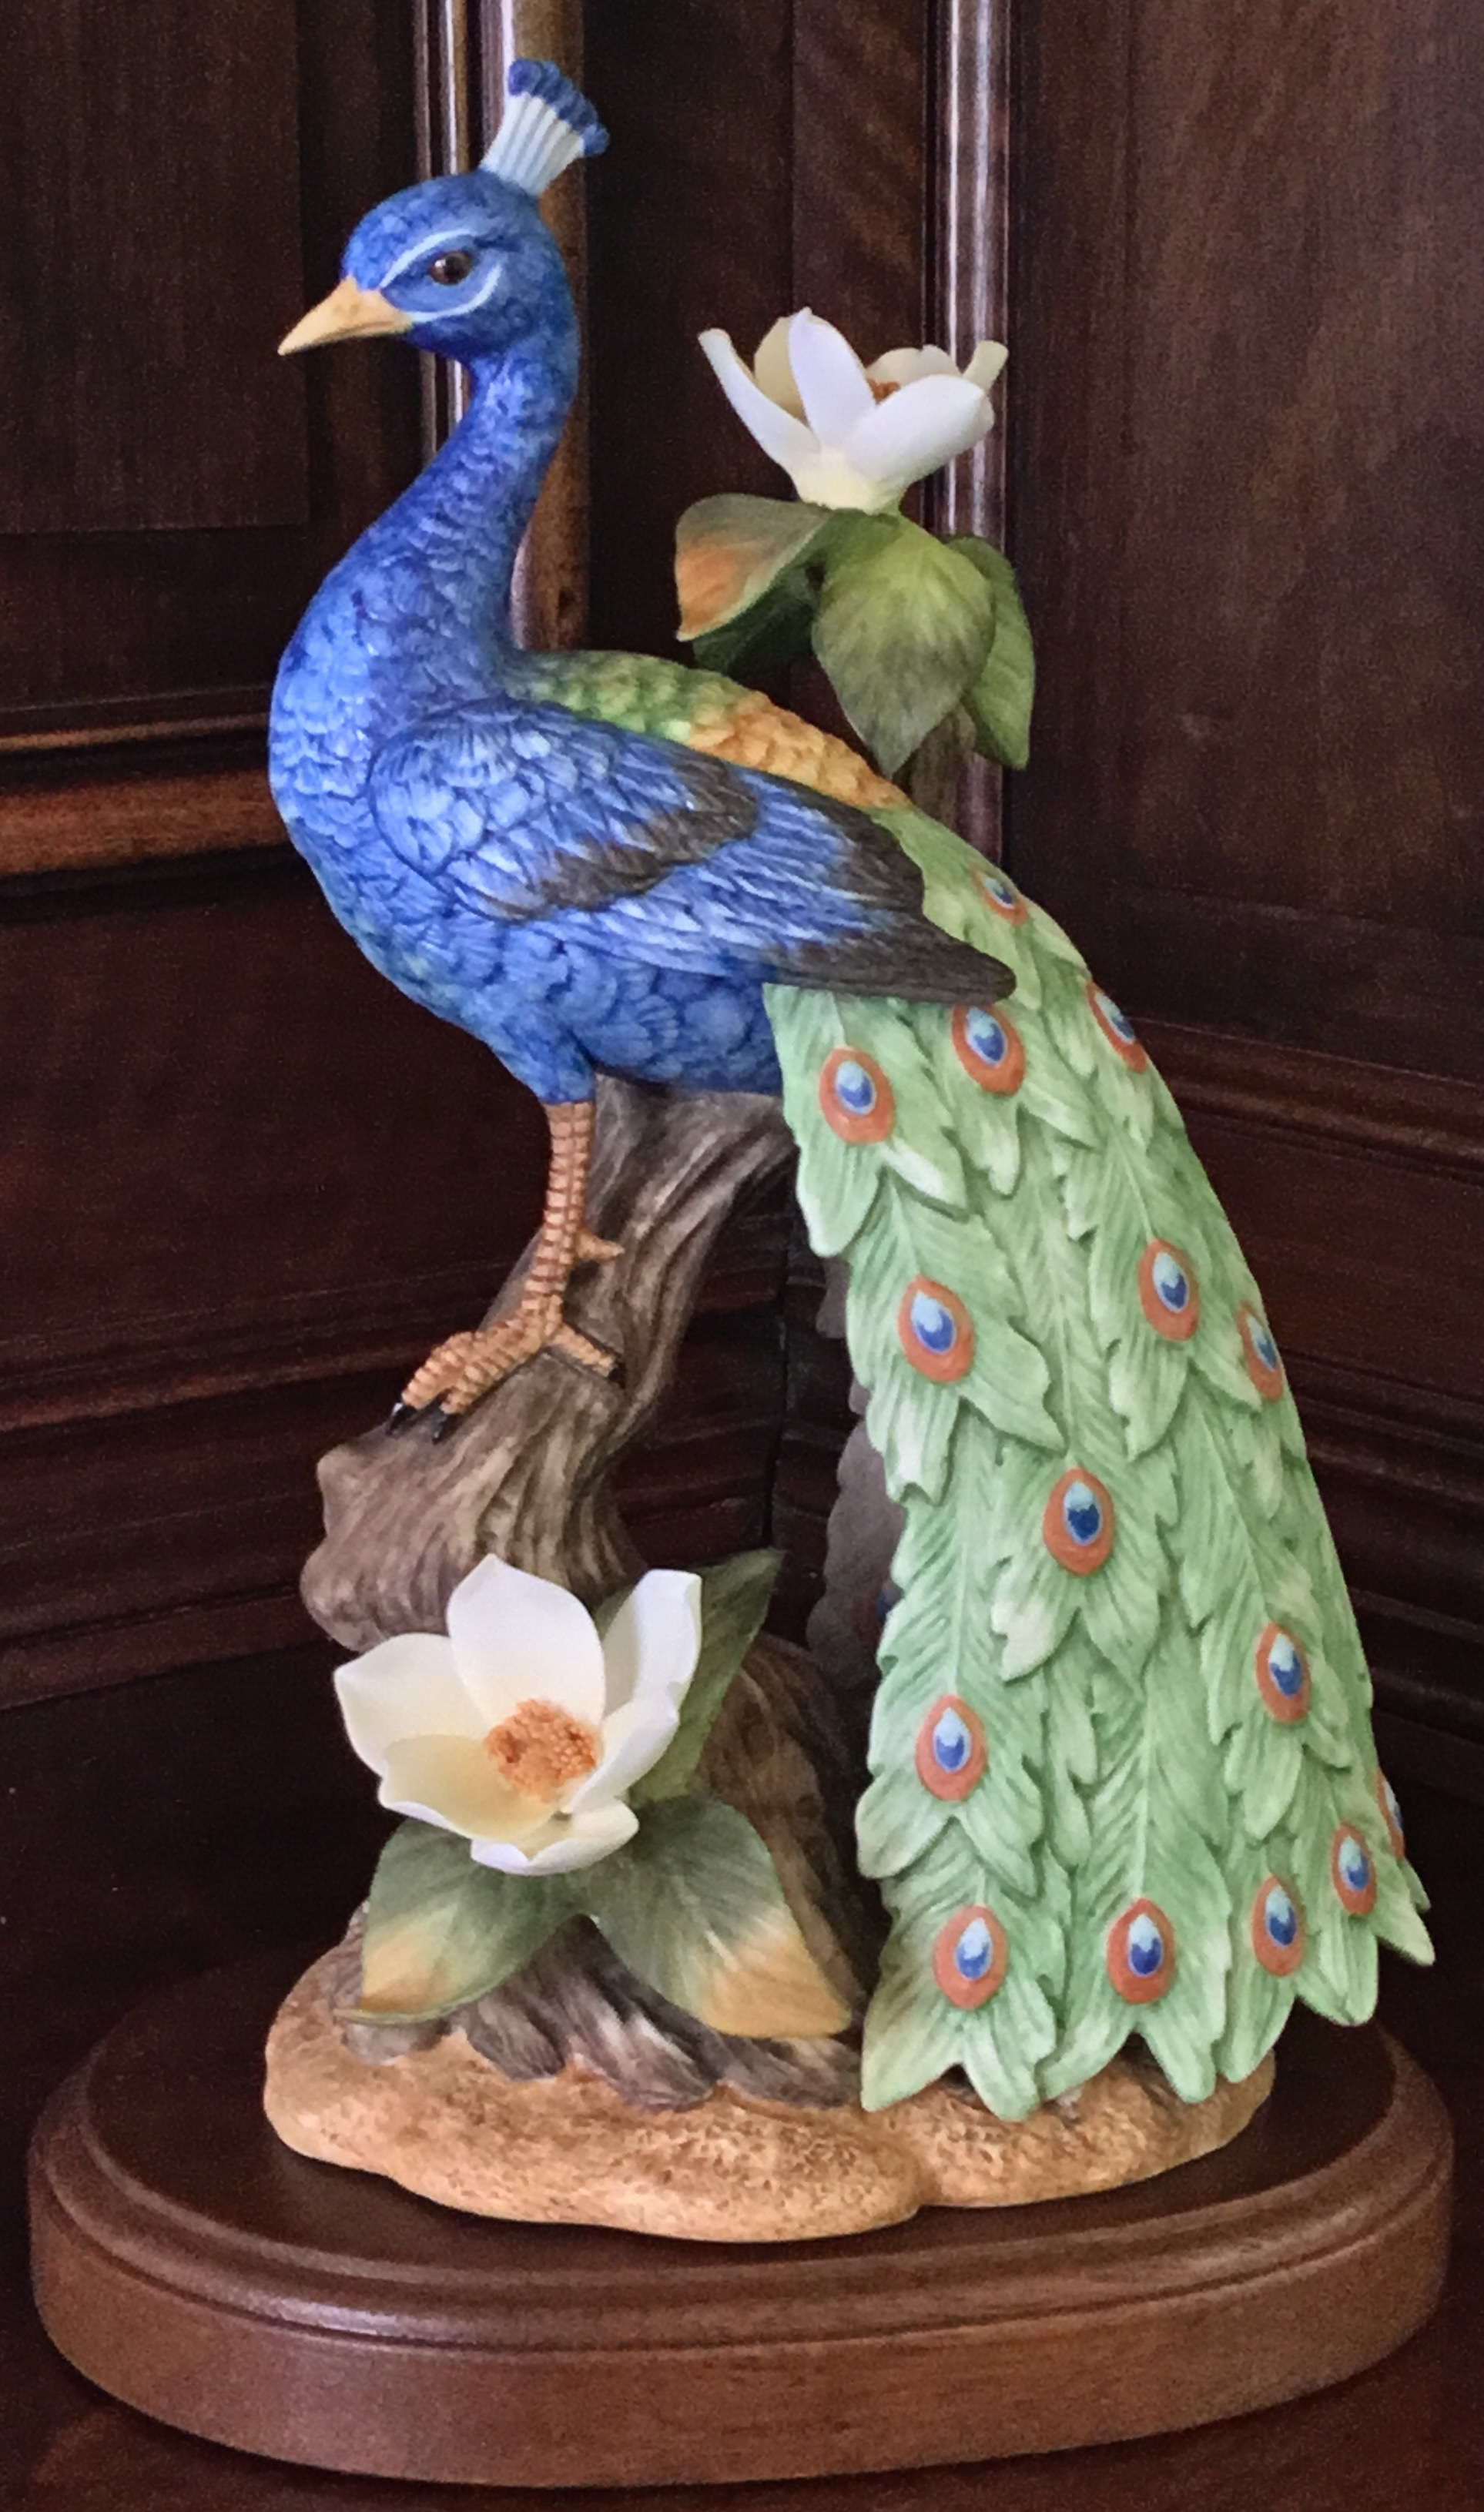 Gallery Birds by Gorham, Peacock with Magnolia